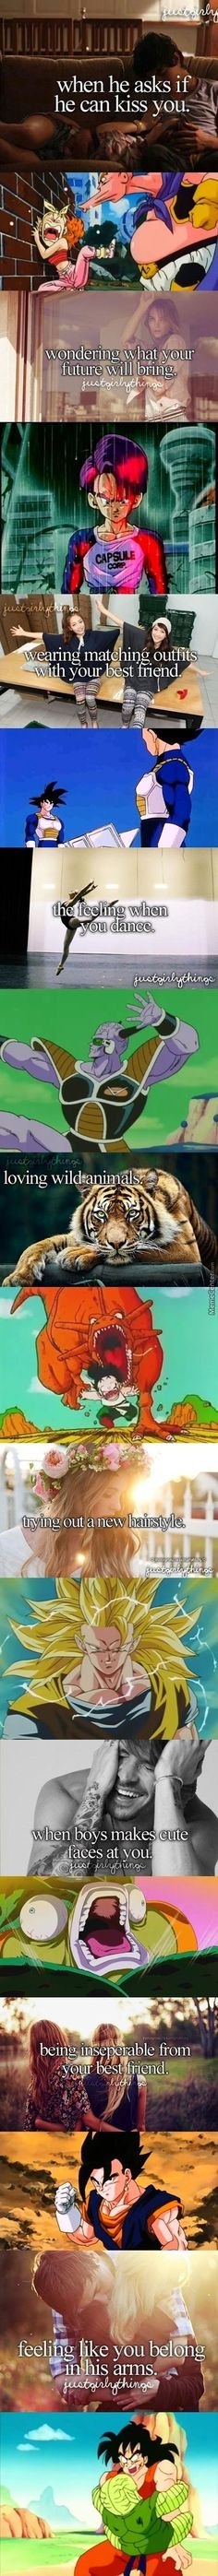 "Just Some Dbz Things. Giggled a little too much when I got to the ""Wearing matching outfits with your best friend"" picture. #QuotedByToniZibert The Cell pic killed me xDD"